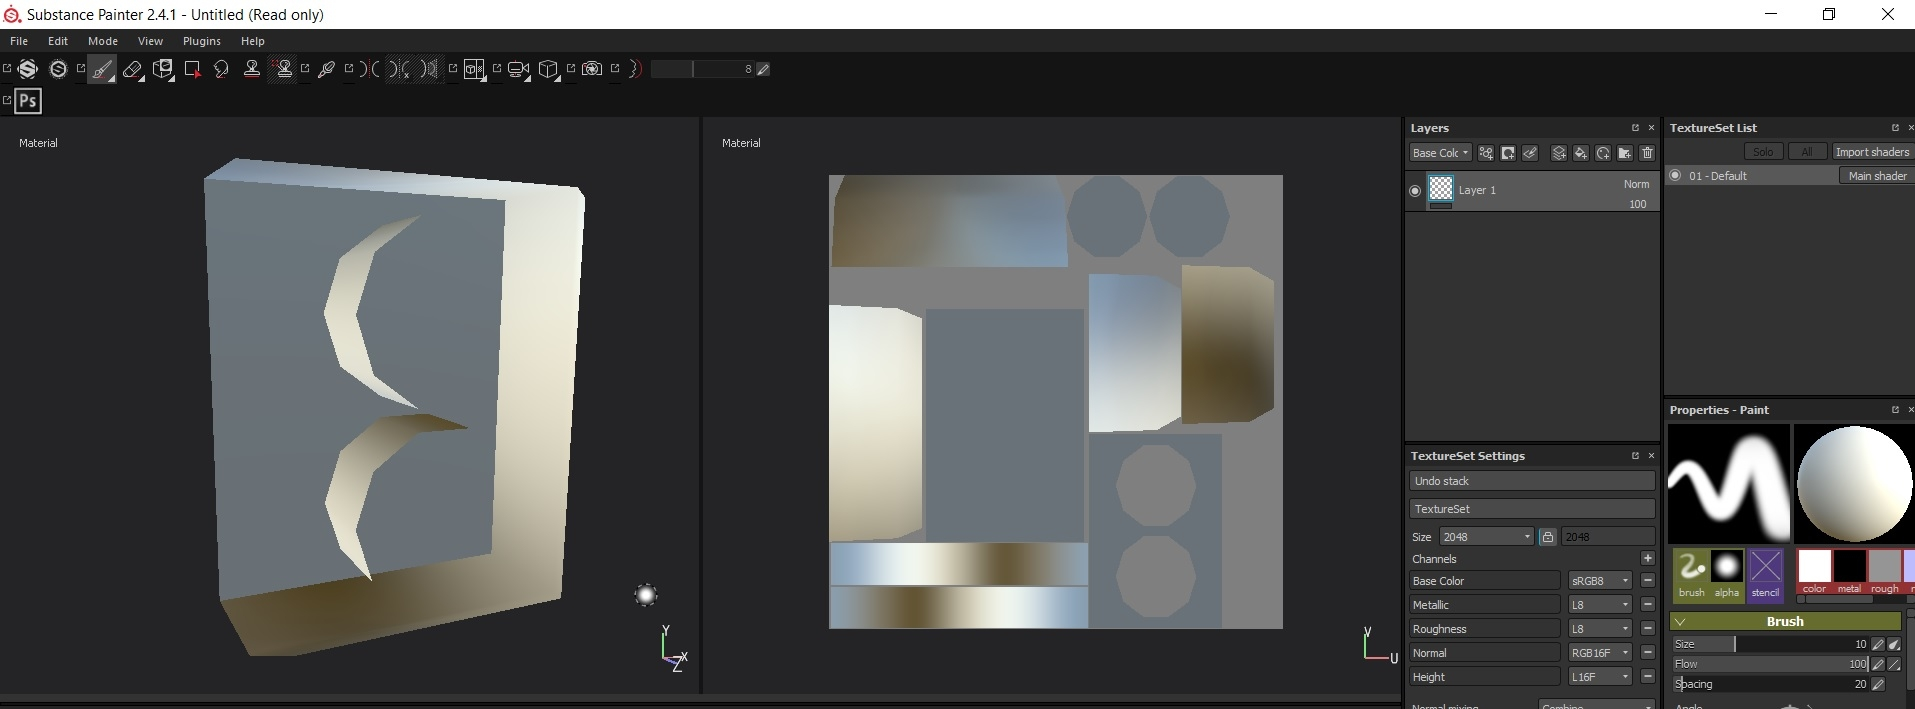 Inverted normals when openig FBX — polycount